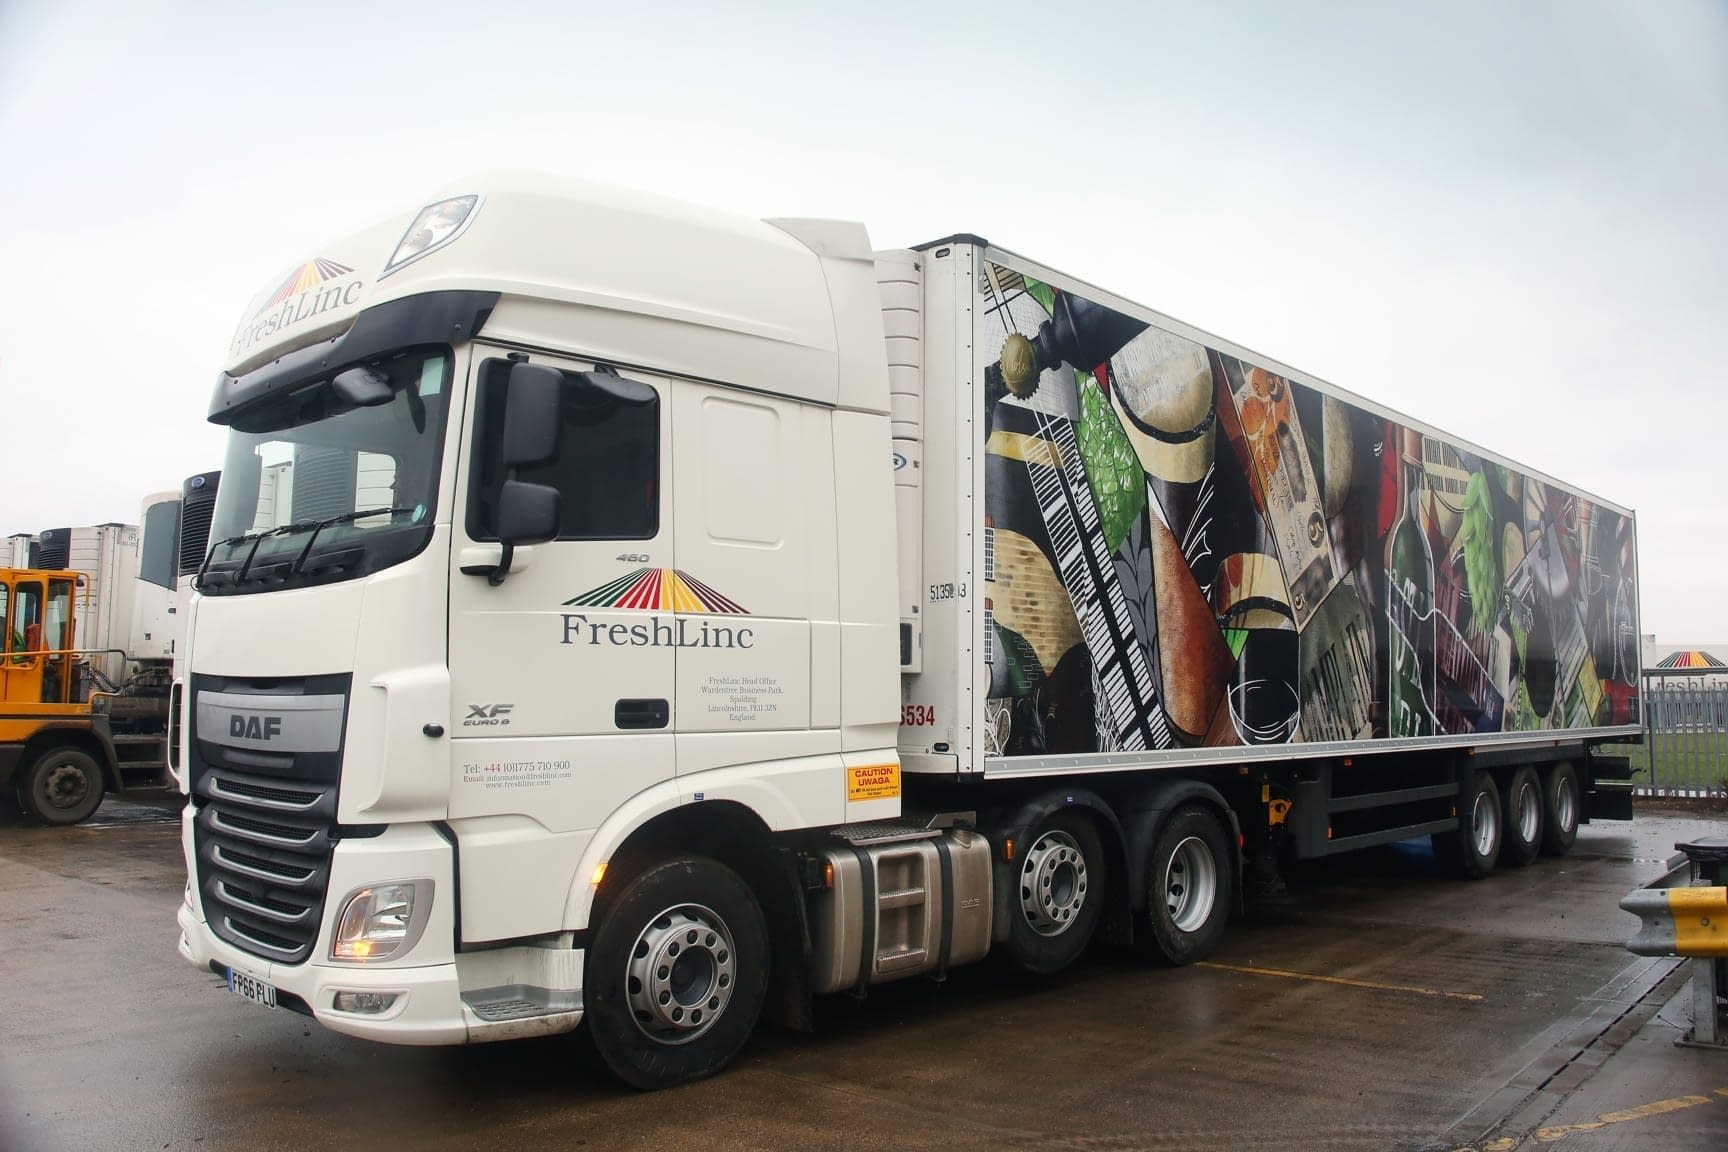 Artistic lorry livery